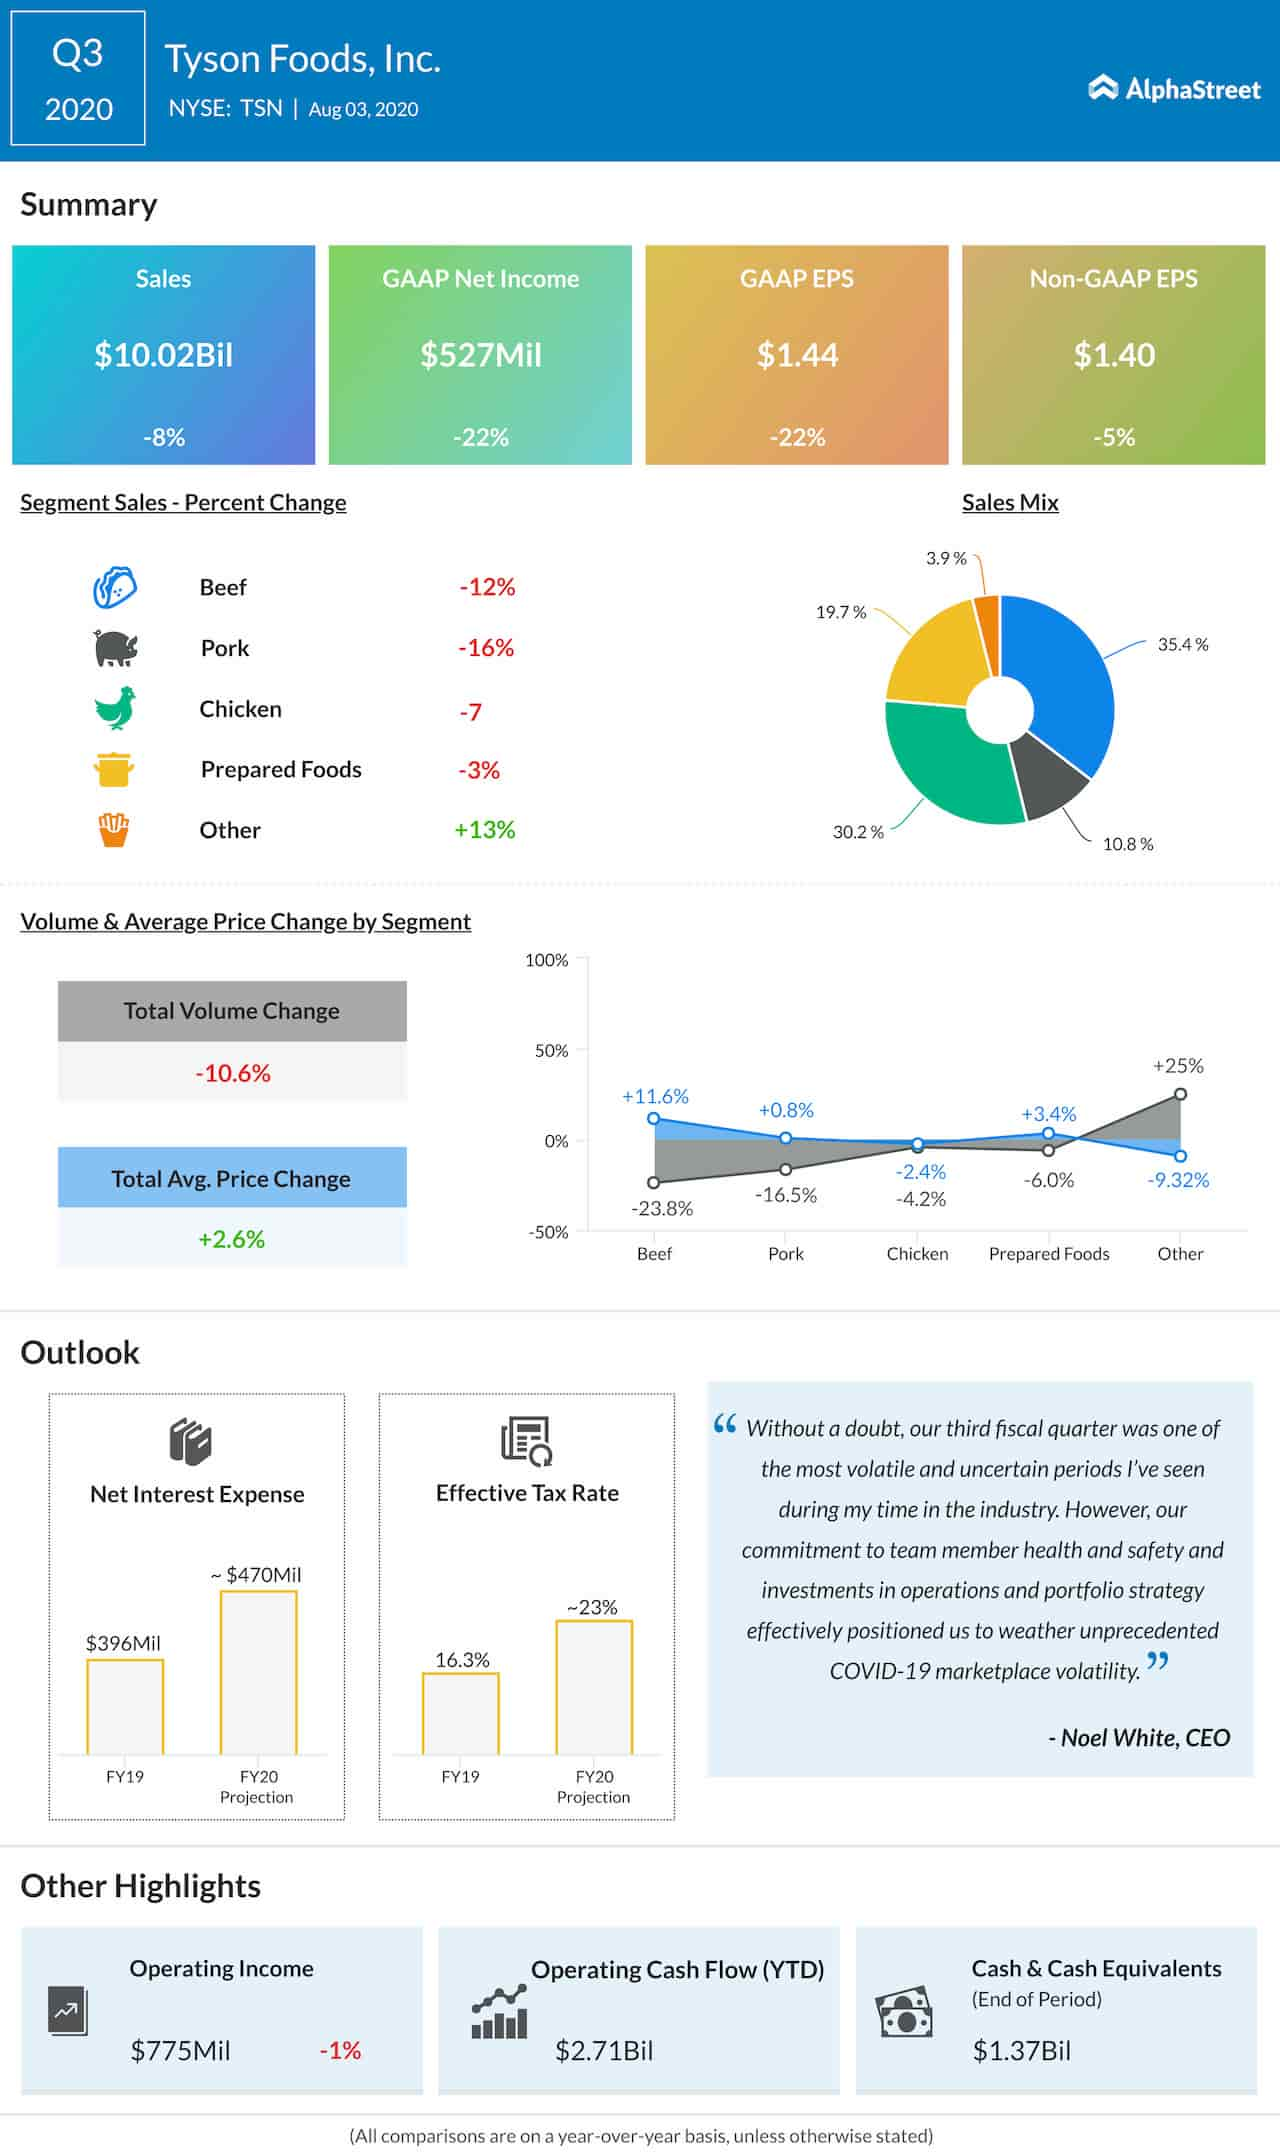 Tyson Foods Q3 2020 Earnings Infographic